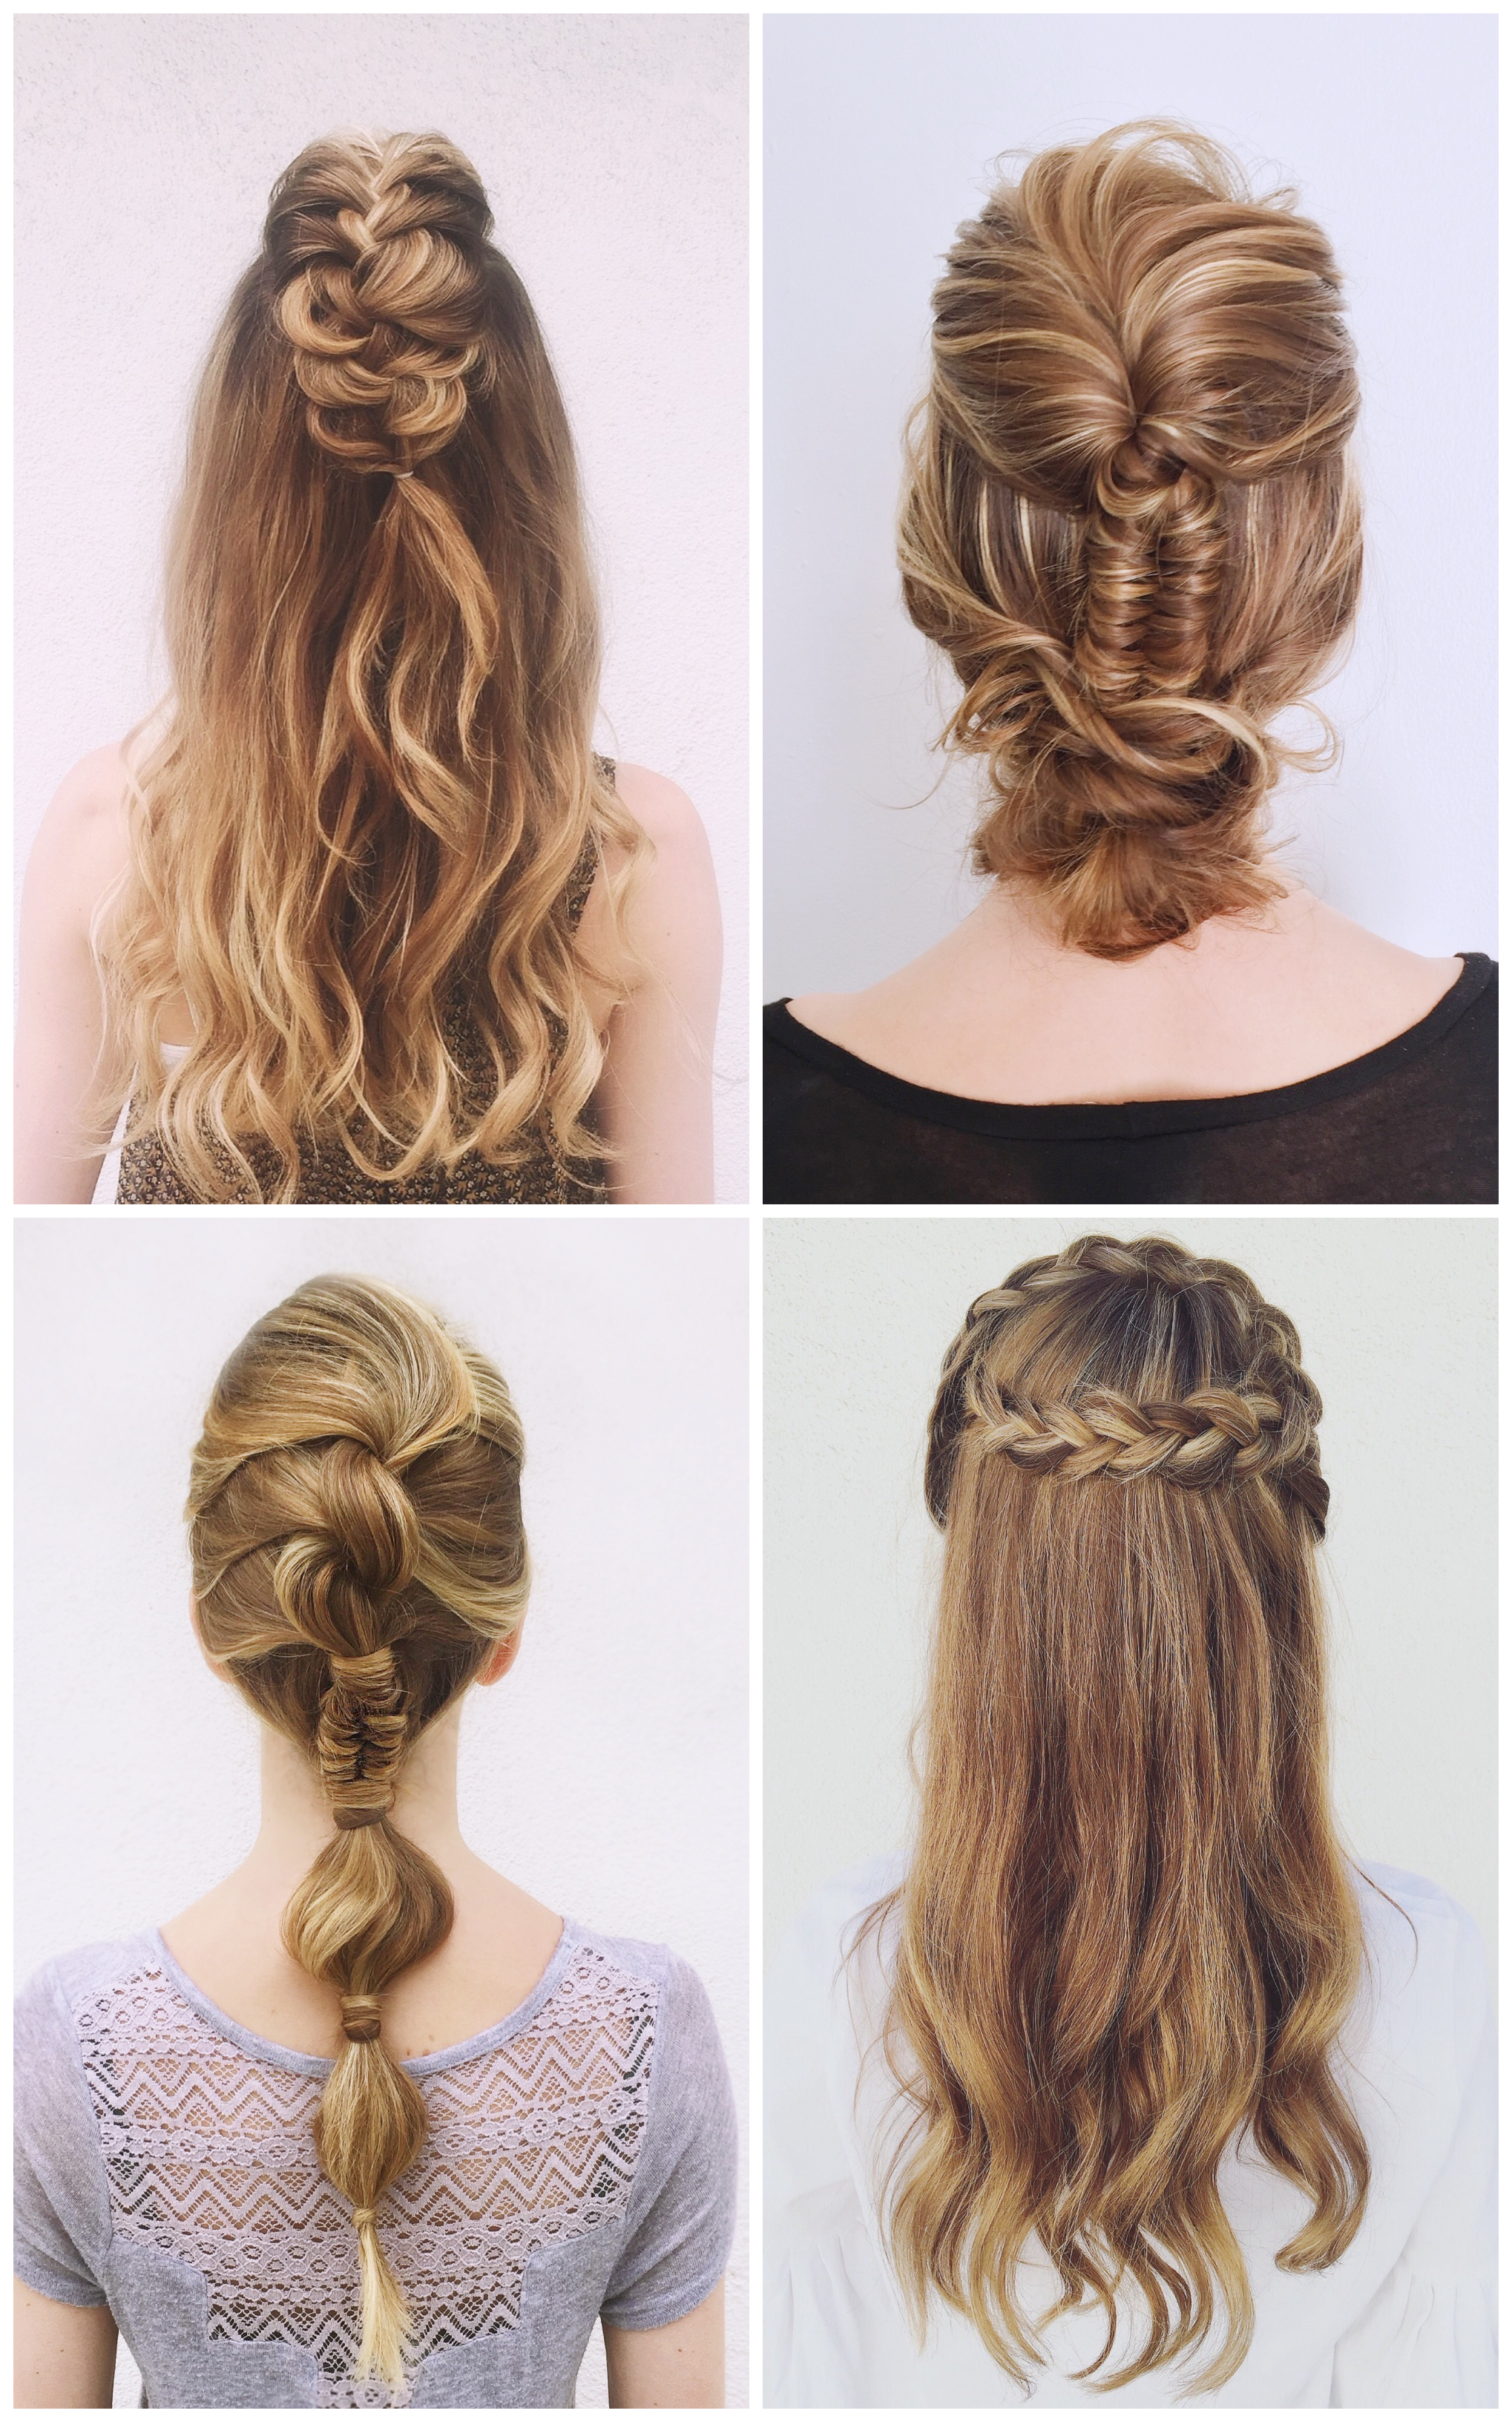 2018 Dutch Braid Prom Updos Inside 20 Braided Prom Hairstyles For Stylish Girls (View 2 of 20)